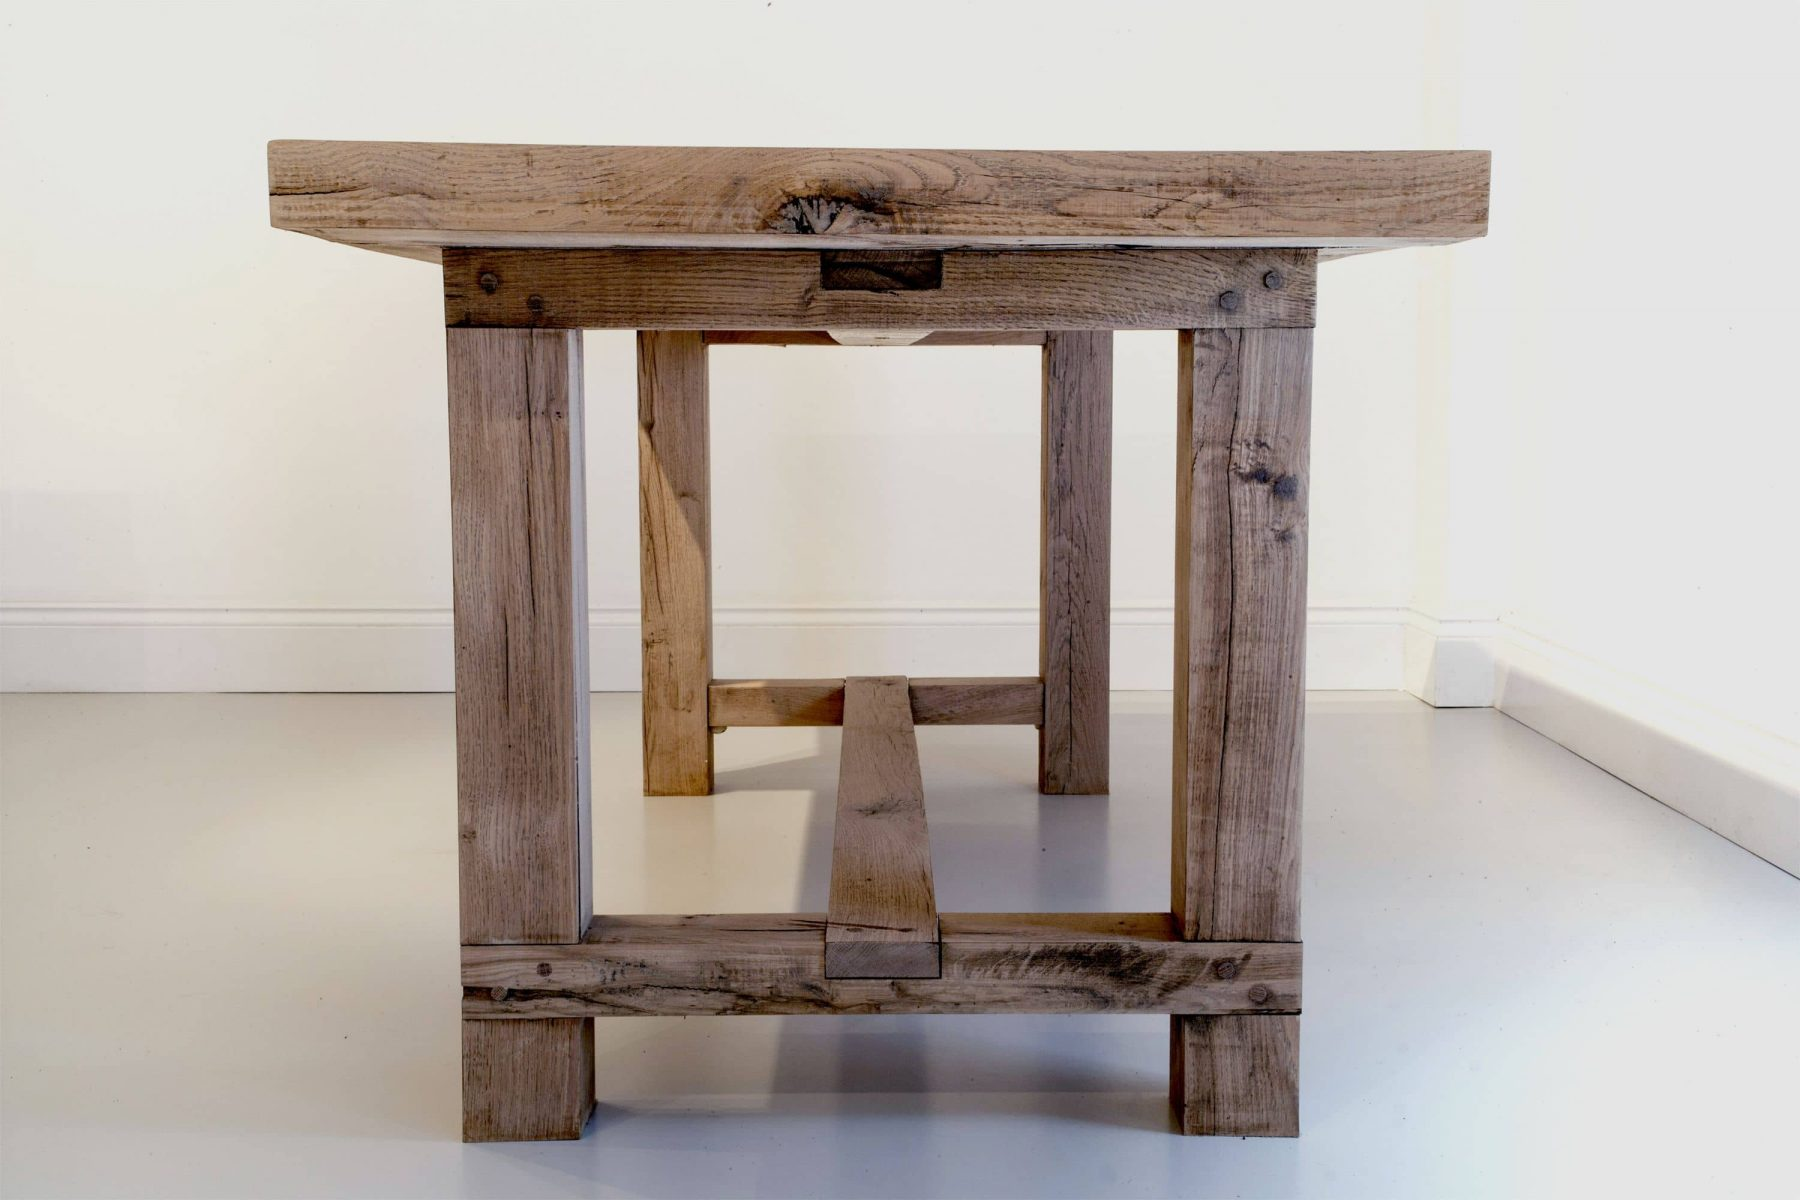 Rustic wooden table